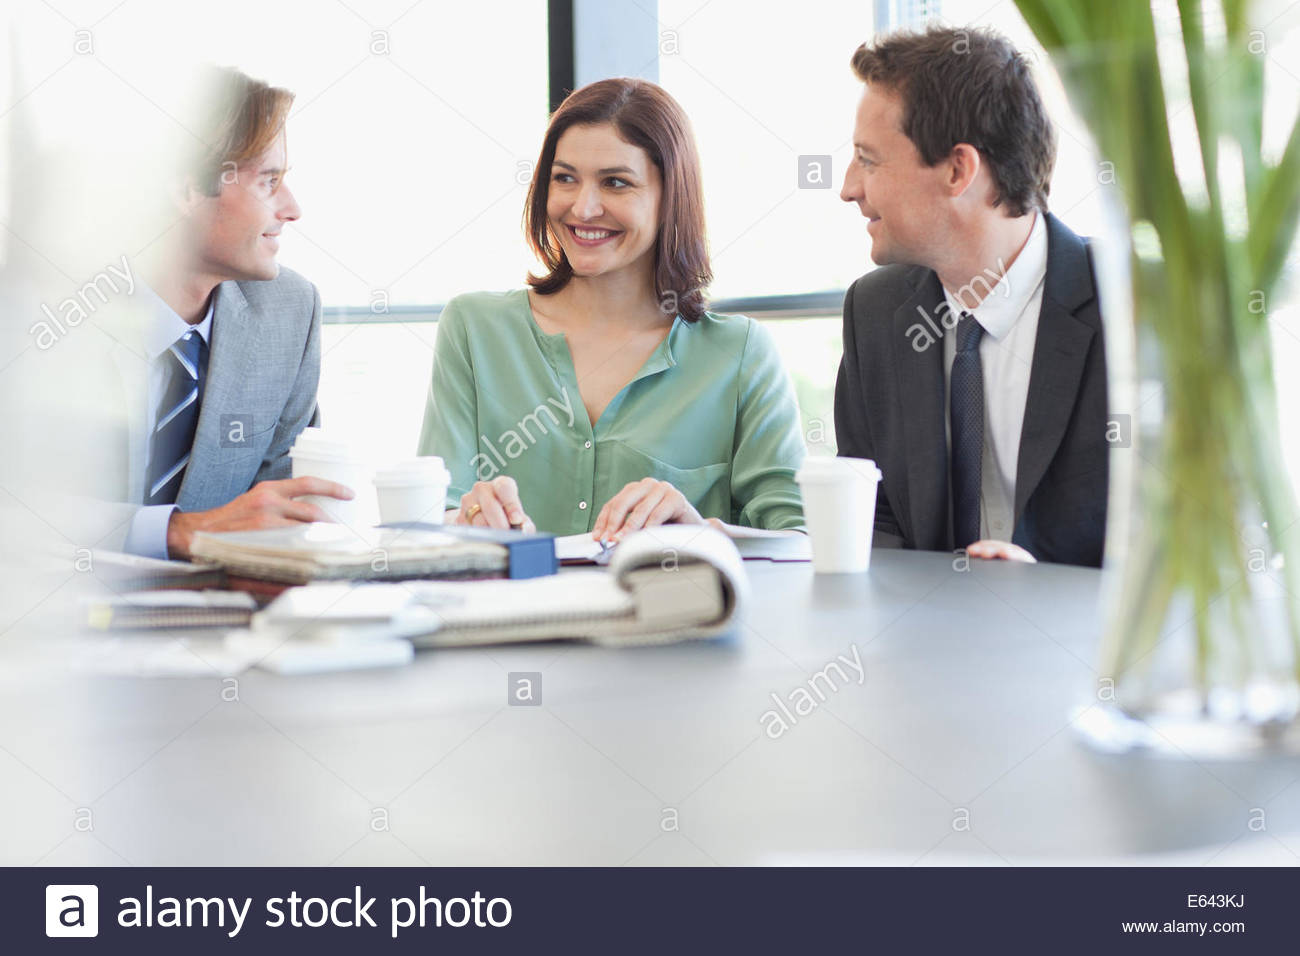 Portrait of smiling business people with coffee at table - Stock Image